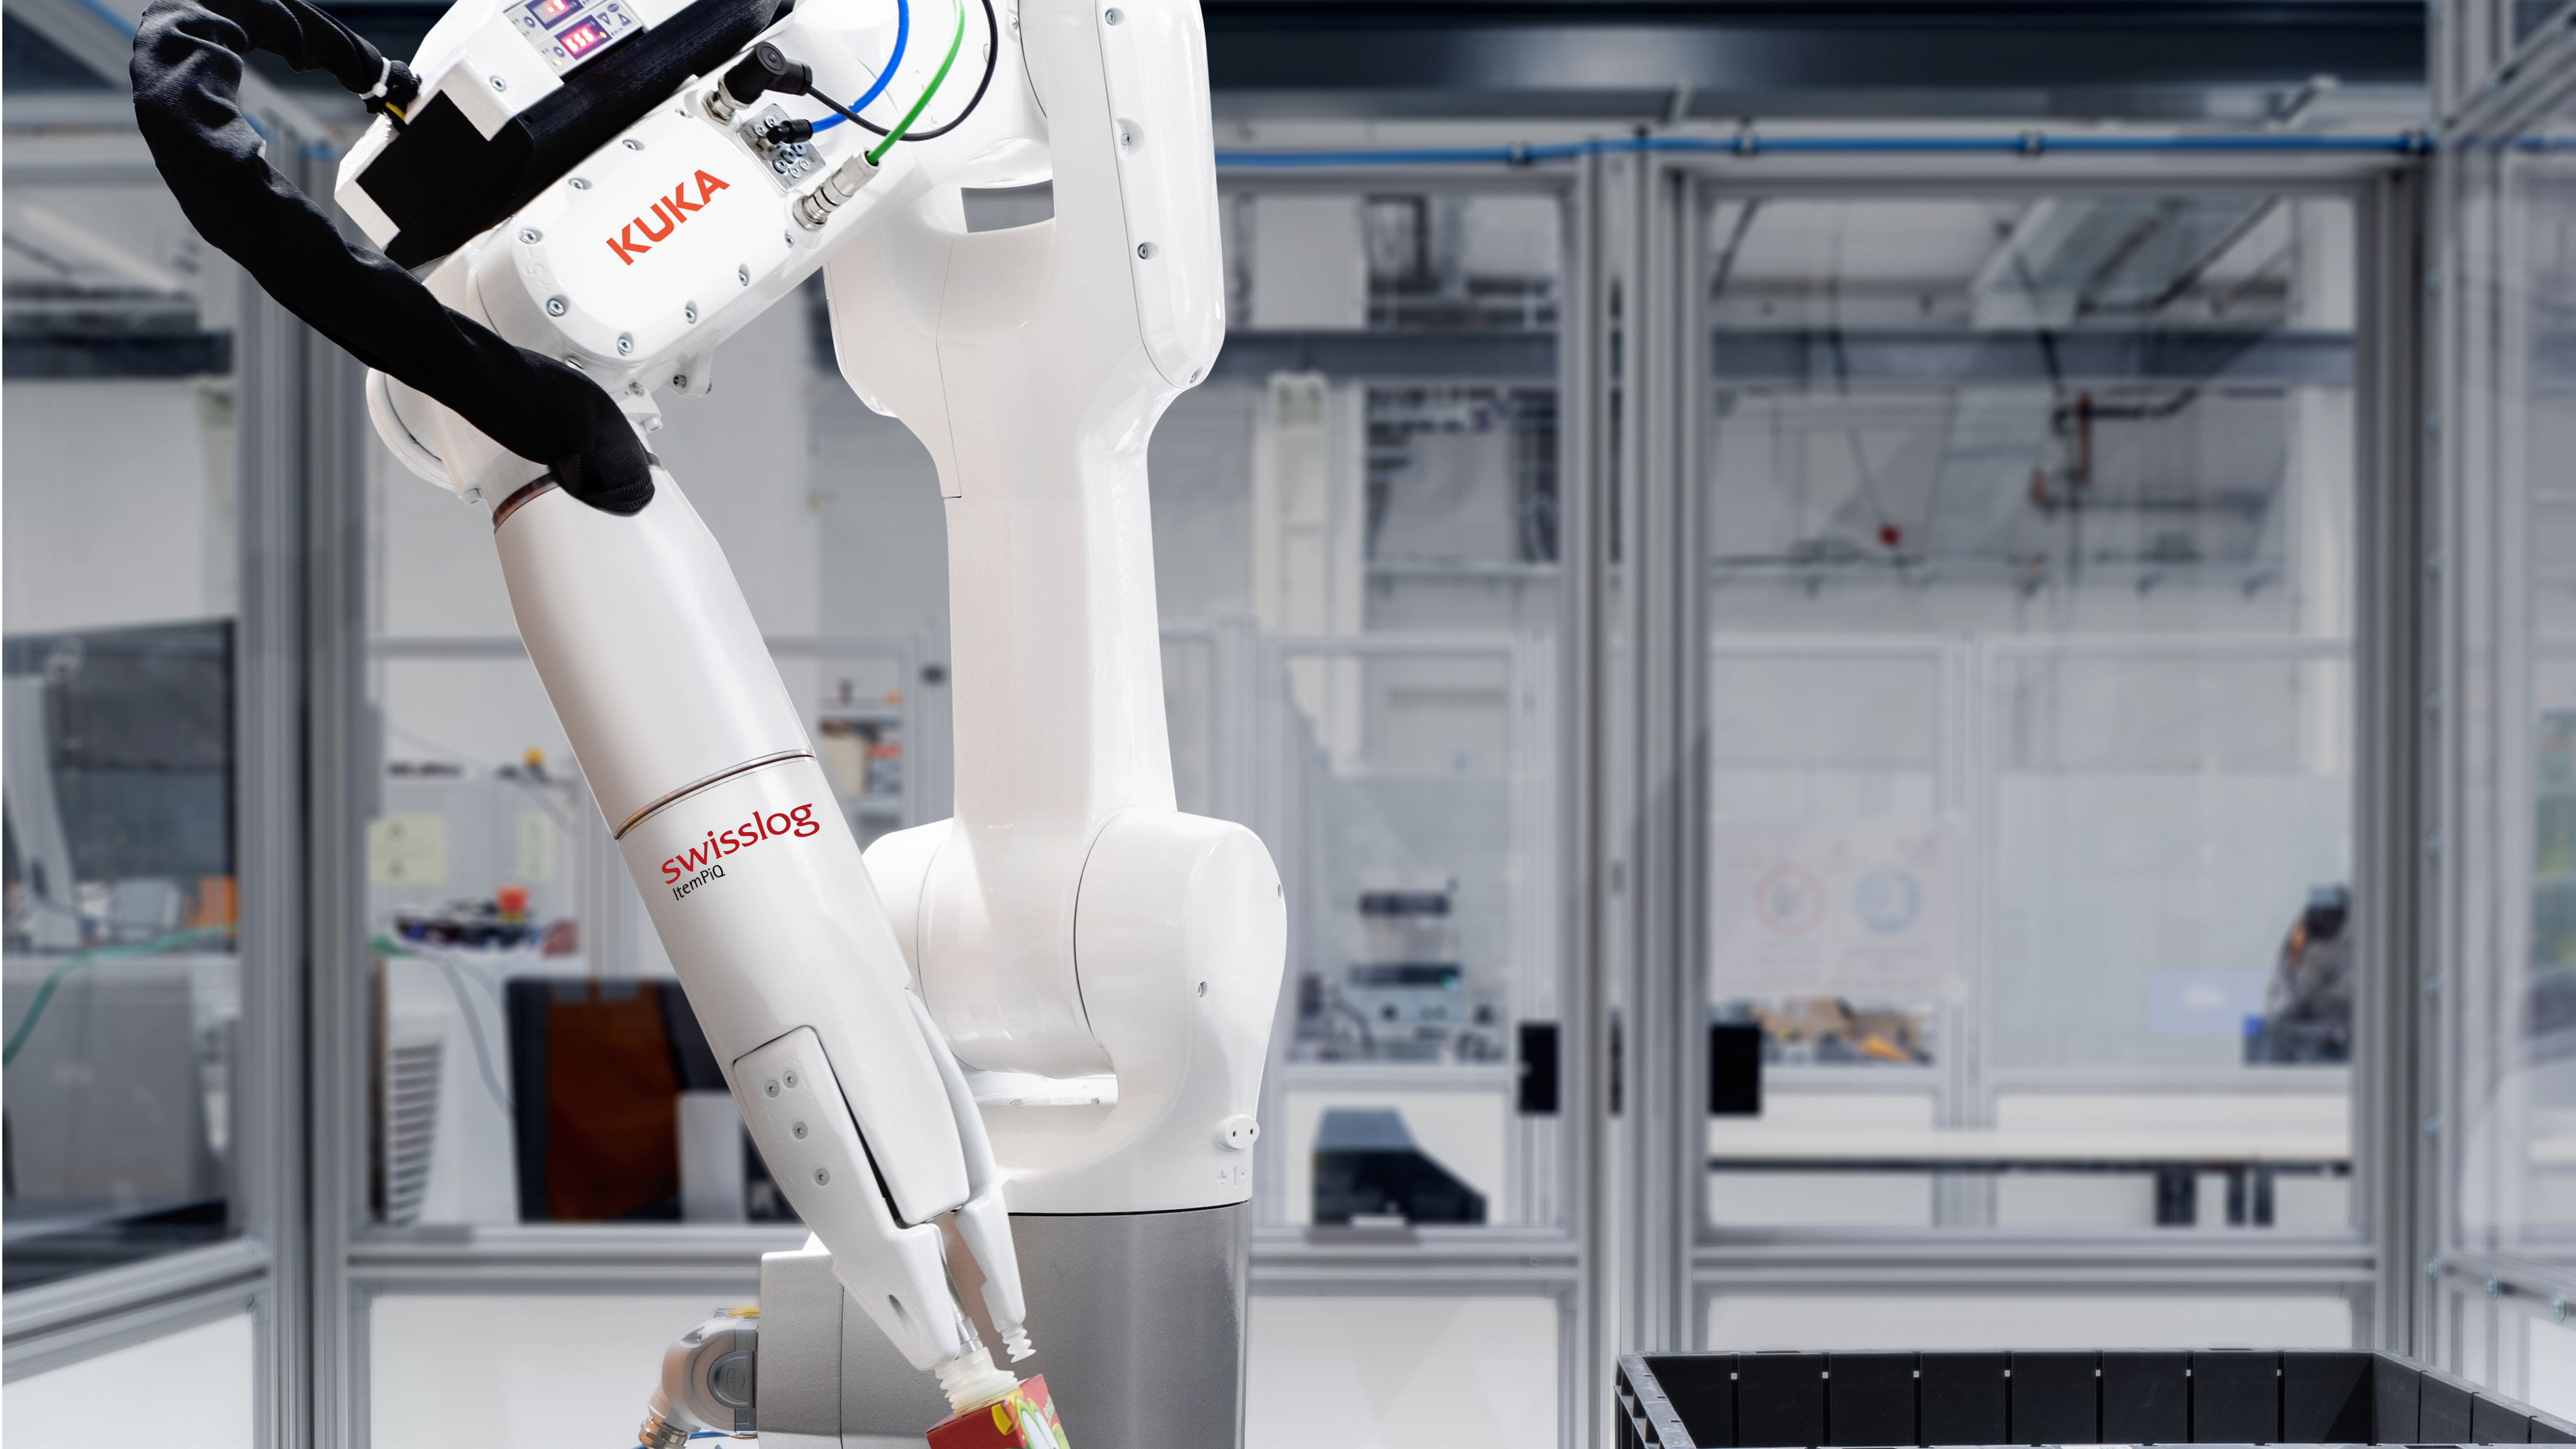 Swisslog itempiq efficient robot based automated order